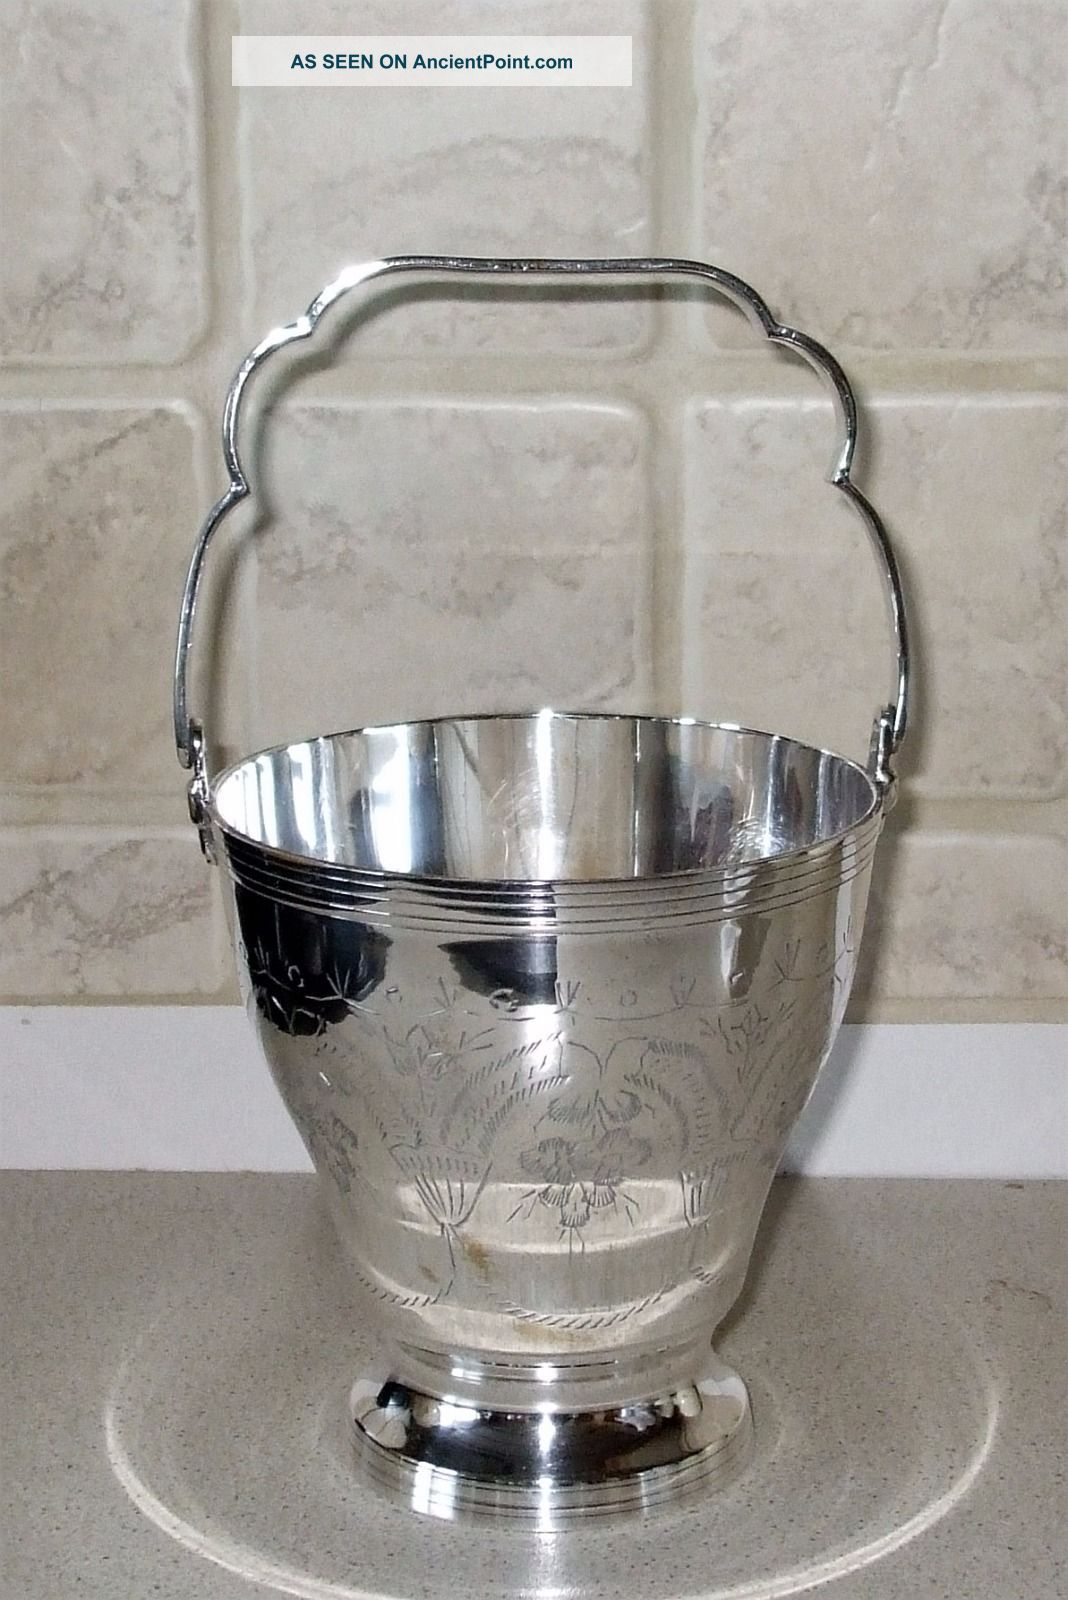 Antique Silver Plated Ice Bucket Other Antique Silverplate photo